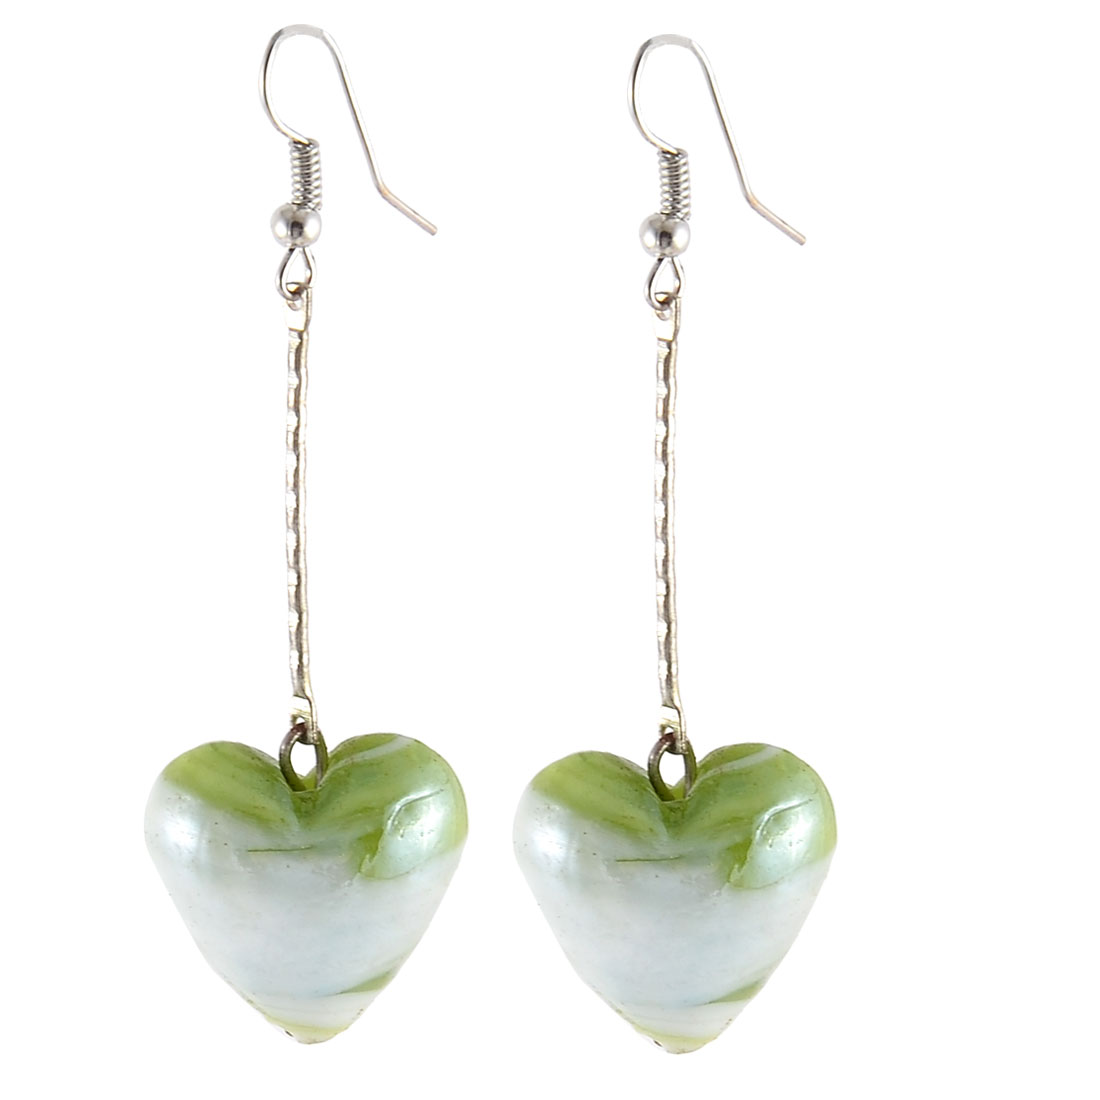 Women Ornament Glass Beads Heart Shape Handcraft Earring Green White Pair